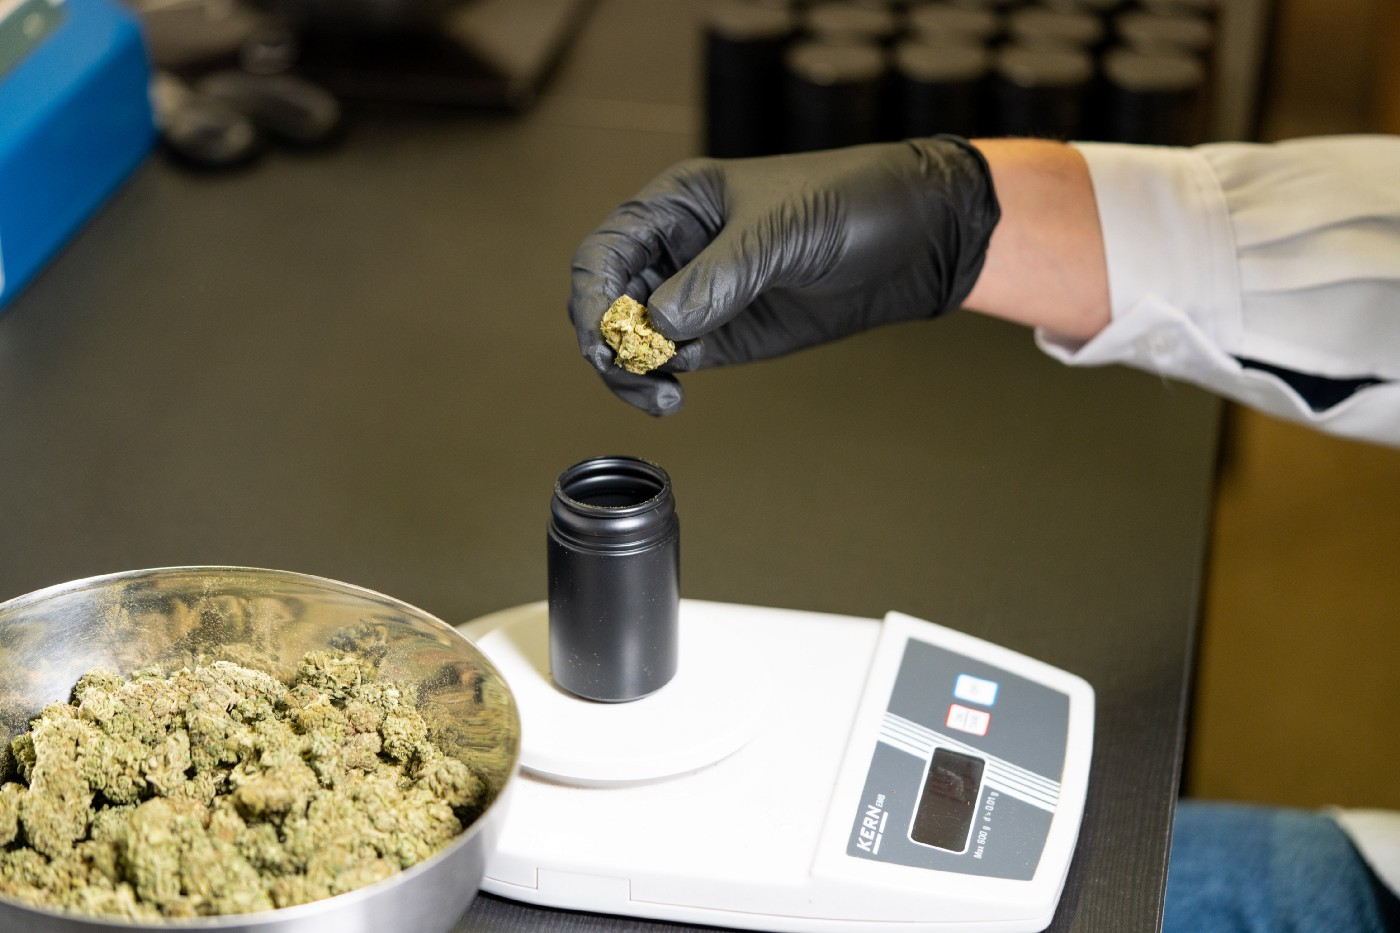 black gloved hand weighing cannabis on a digital scale